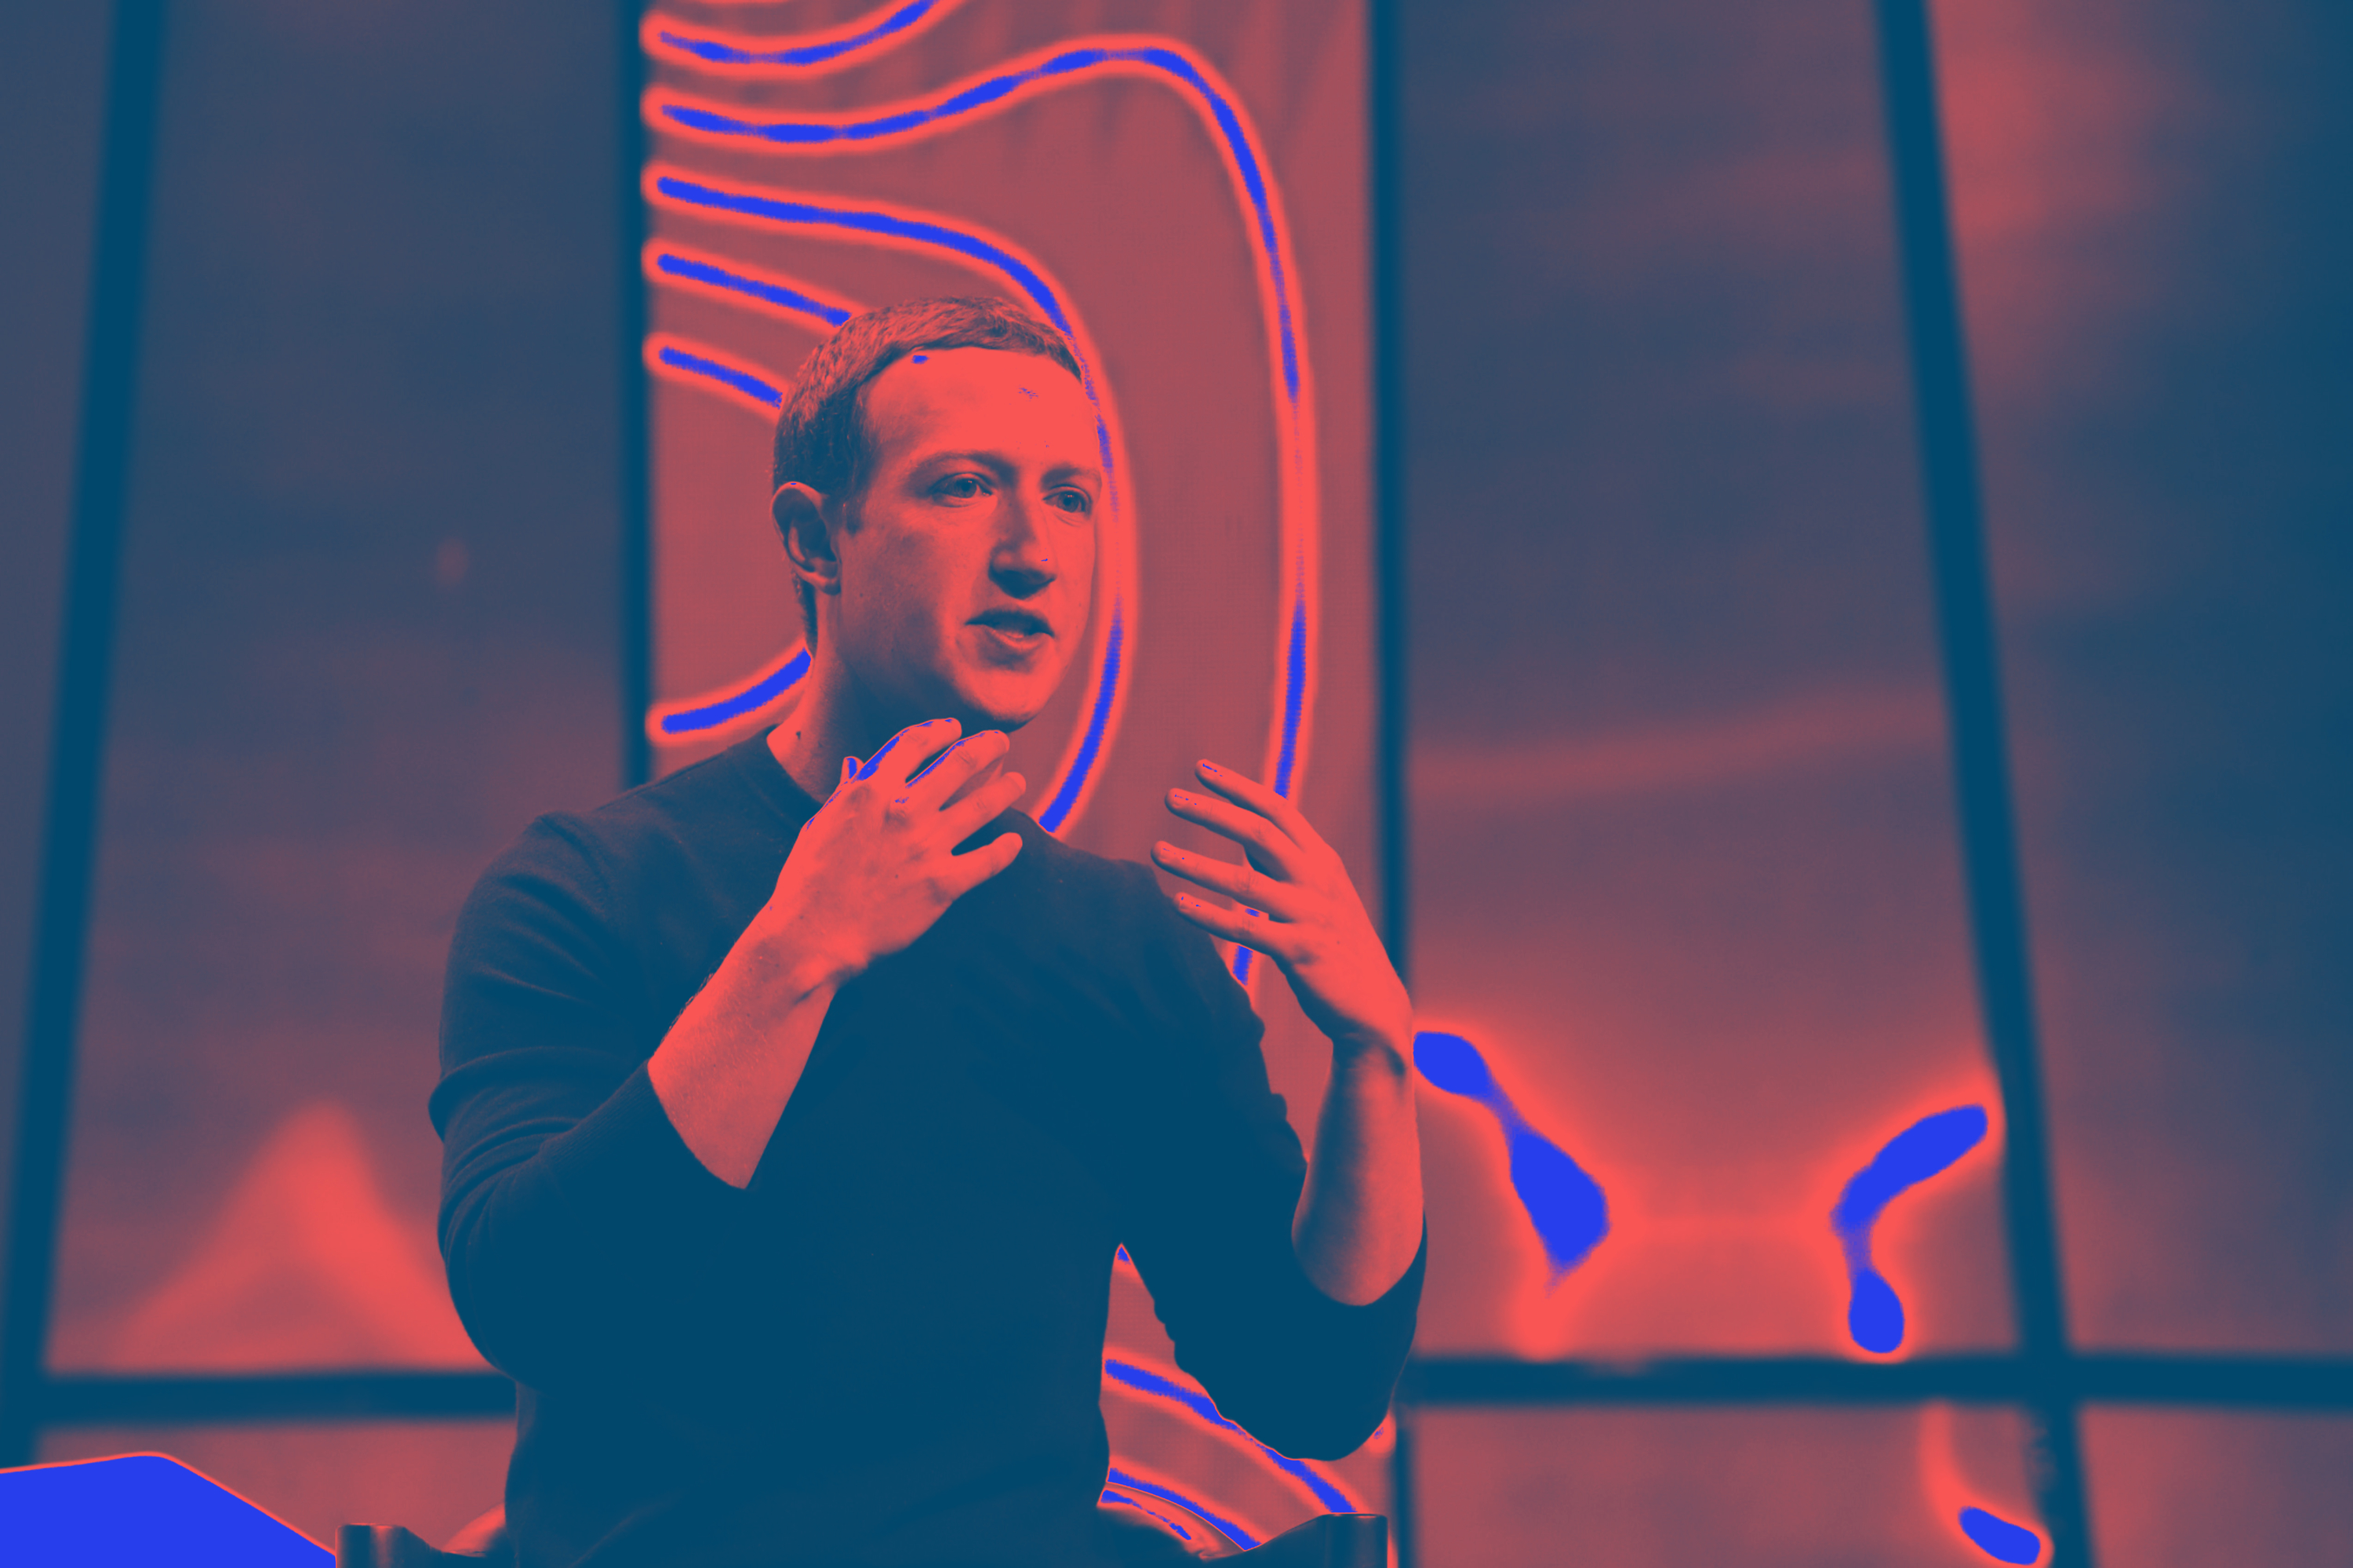 Facebook warns that ad business has been 'adversely affected' during pandemic